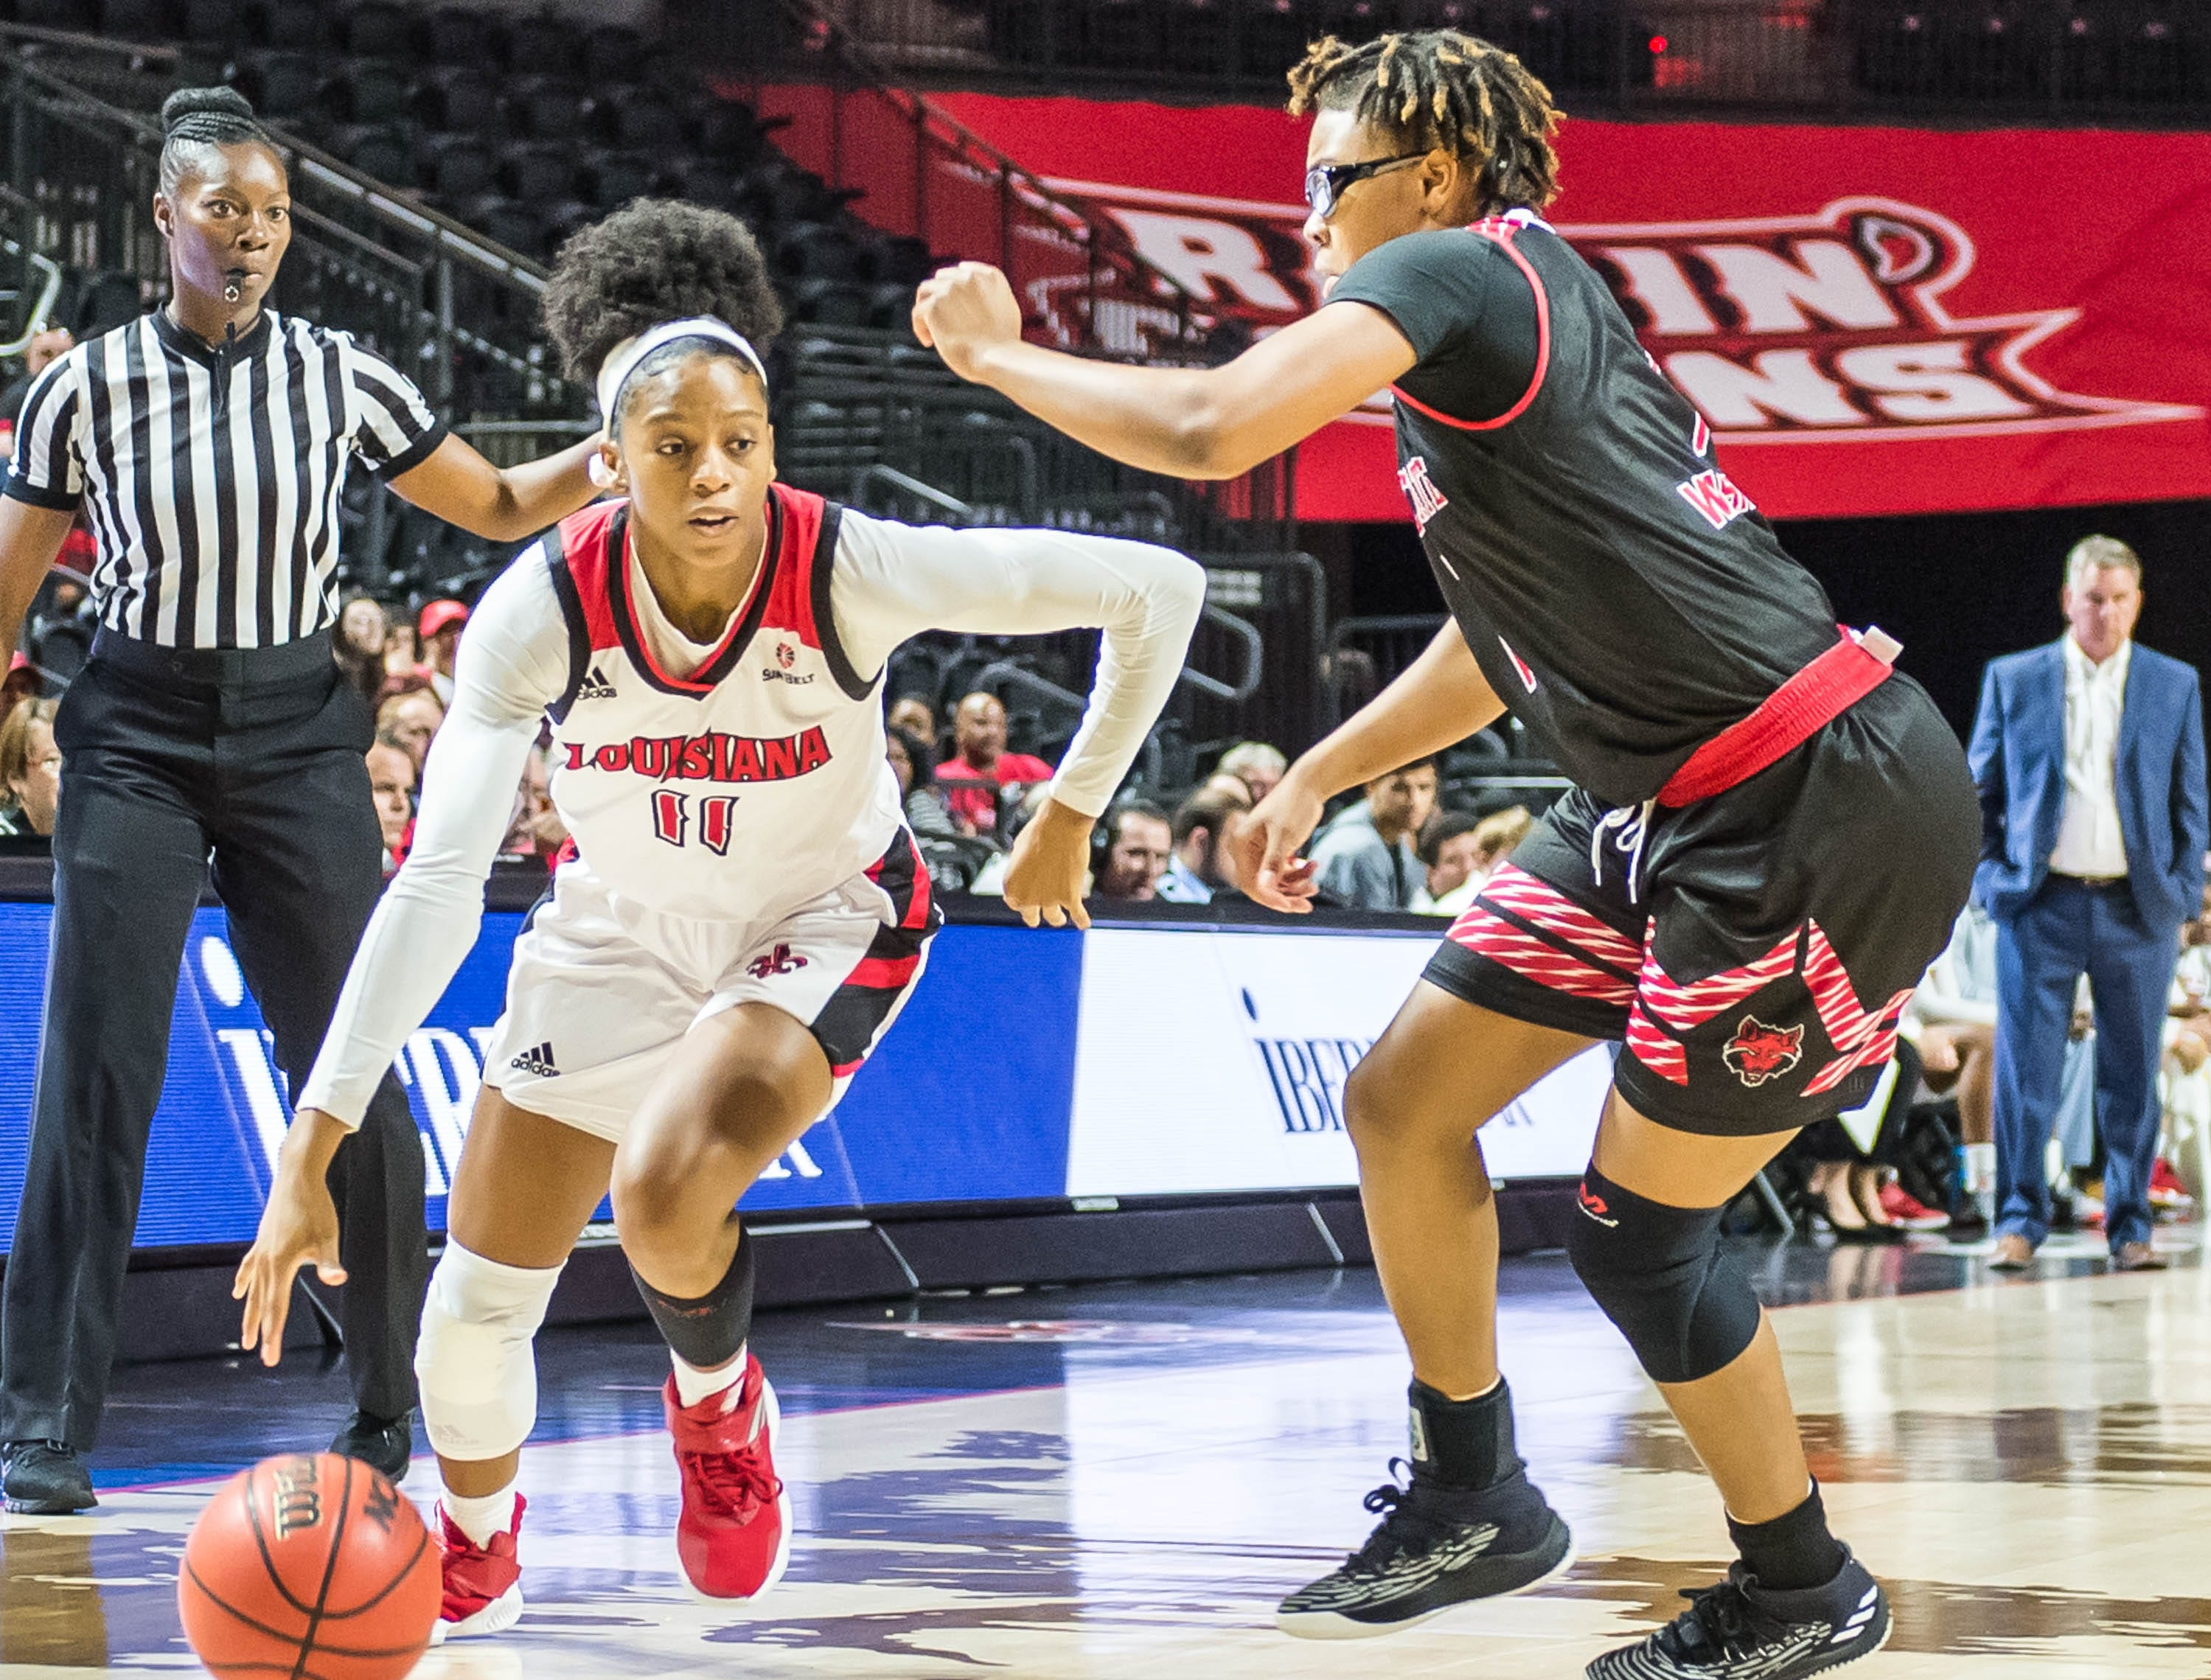 Cajuns guard Skyler Goodwin (11) tries to take the ball to the inside as the Cajuns women's basketball team plays the Arkansas State Red Wolves at the Cajundome on Saturday, March 9, 2019.